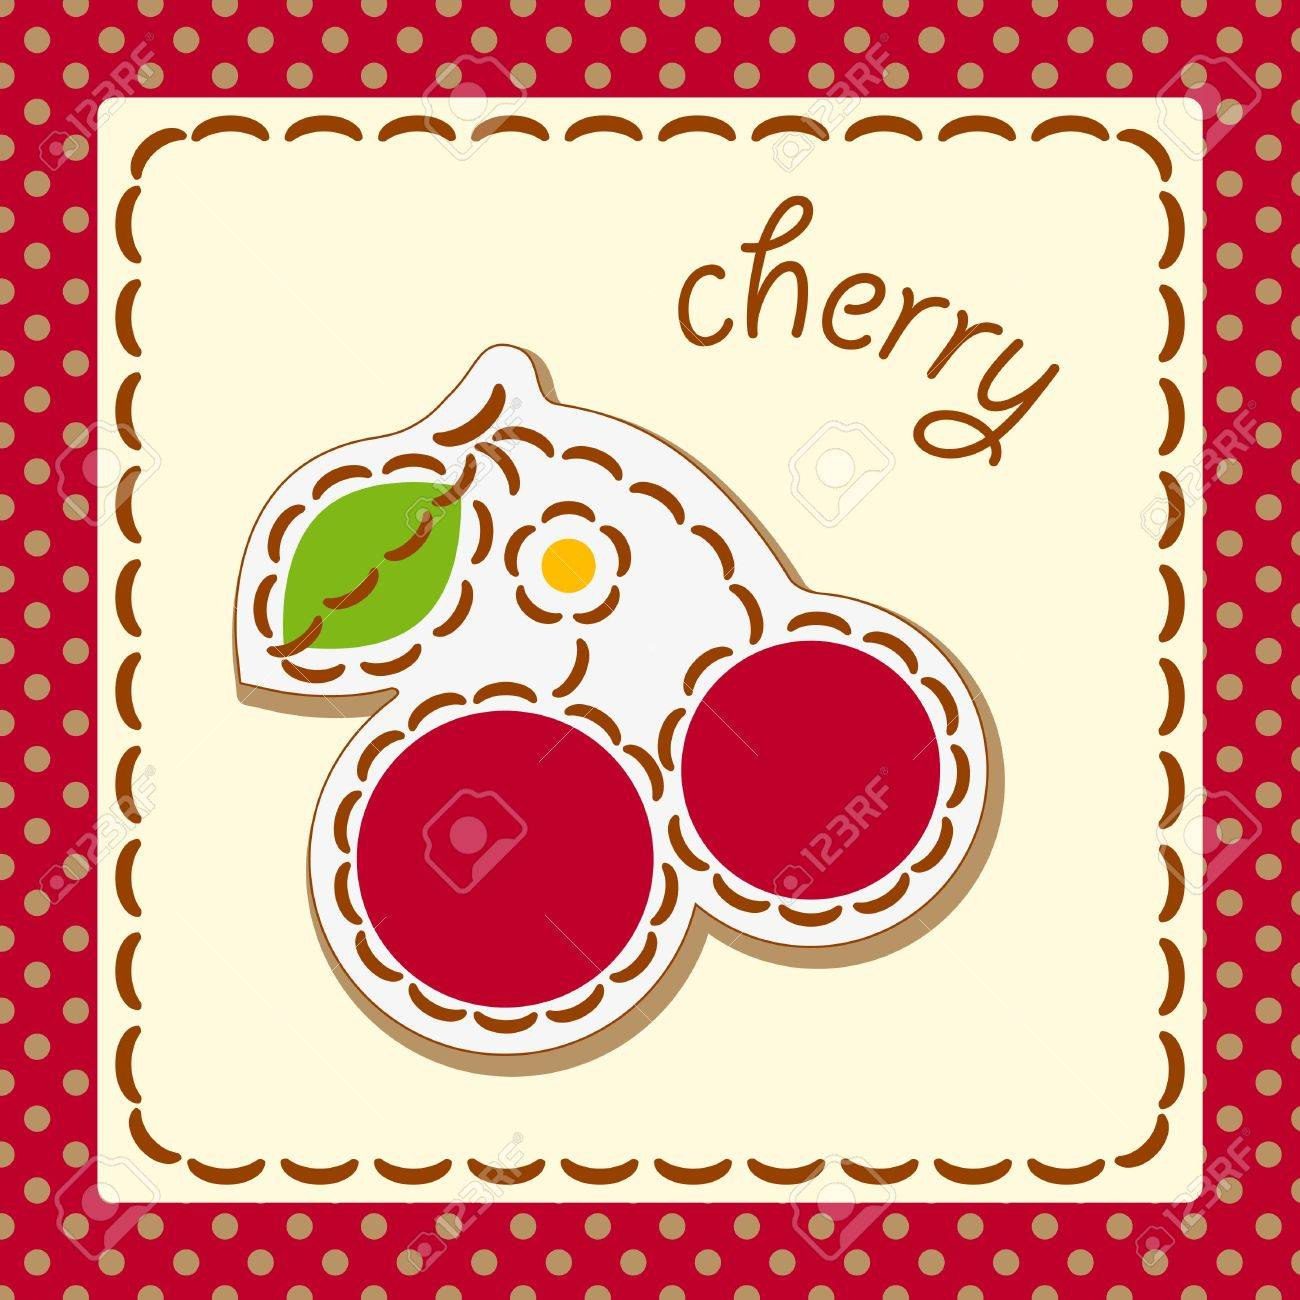 cherry. Cards from the fruit and berry, decorated with embroidery on the elements of the original background. Stock Vector - 17180410